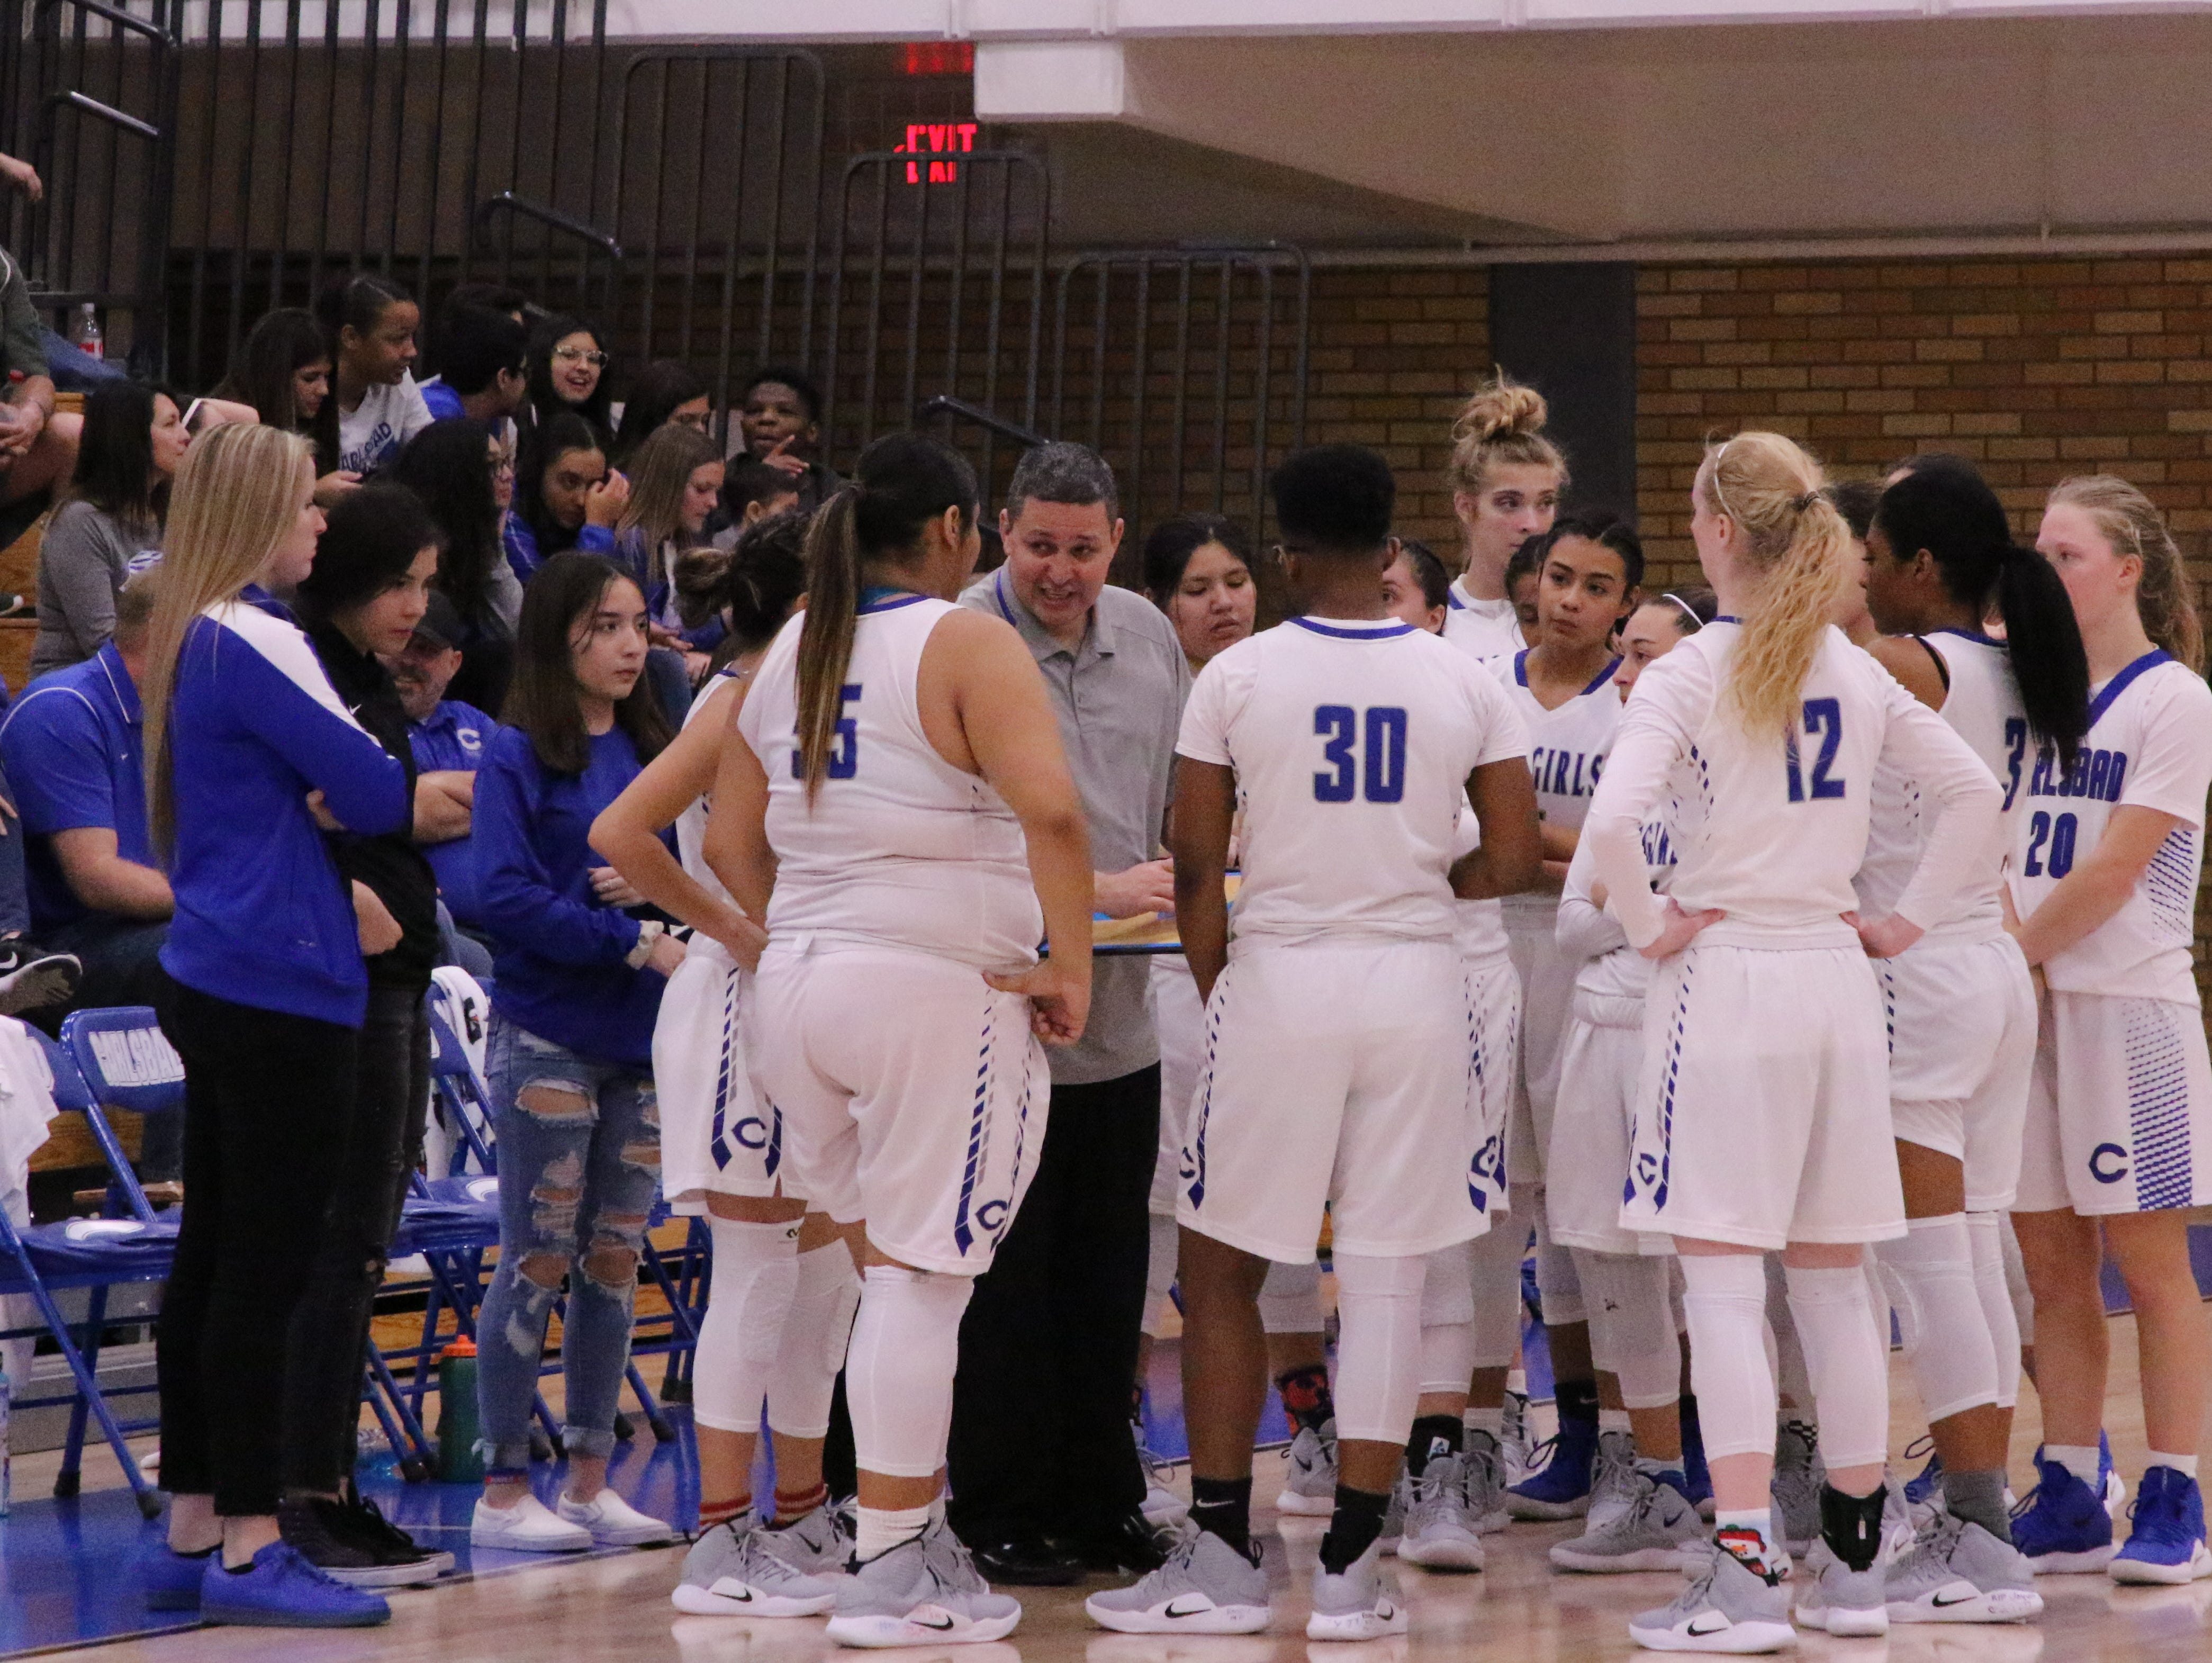 The Cavegirls talk during a timeout in Friday's game.